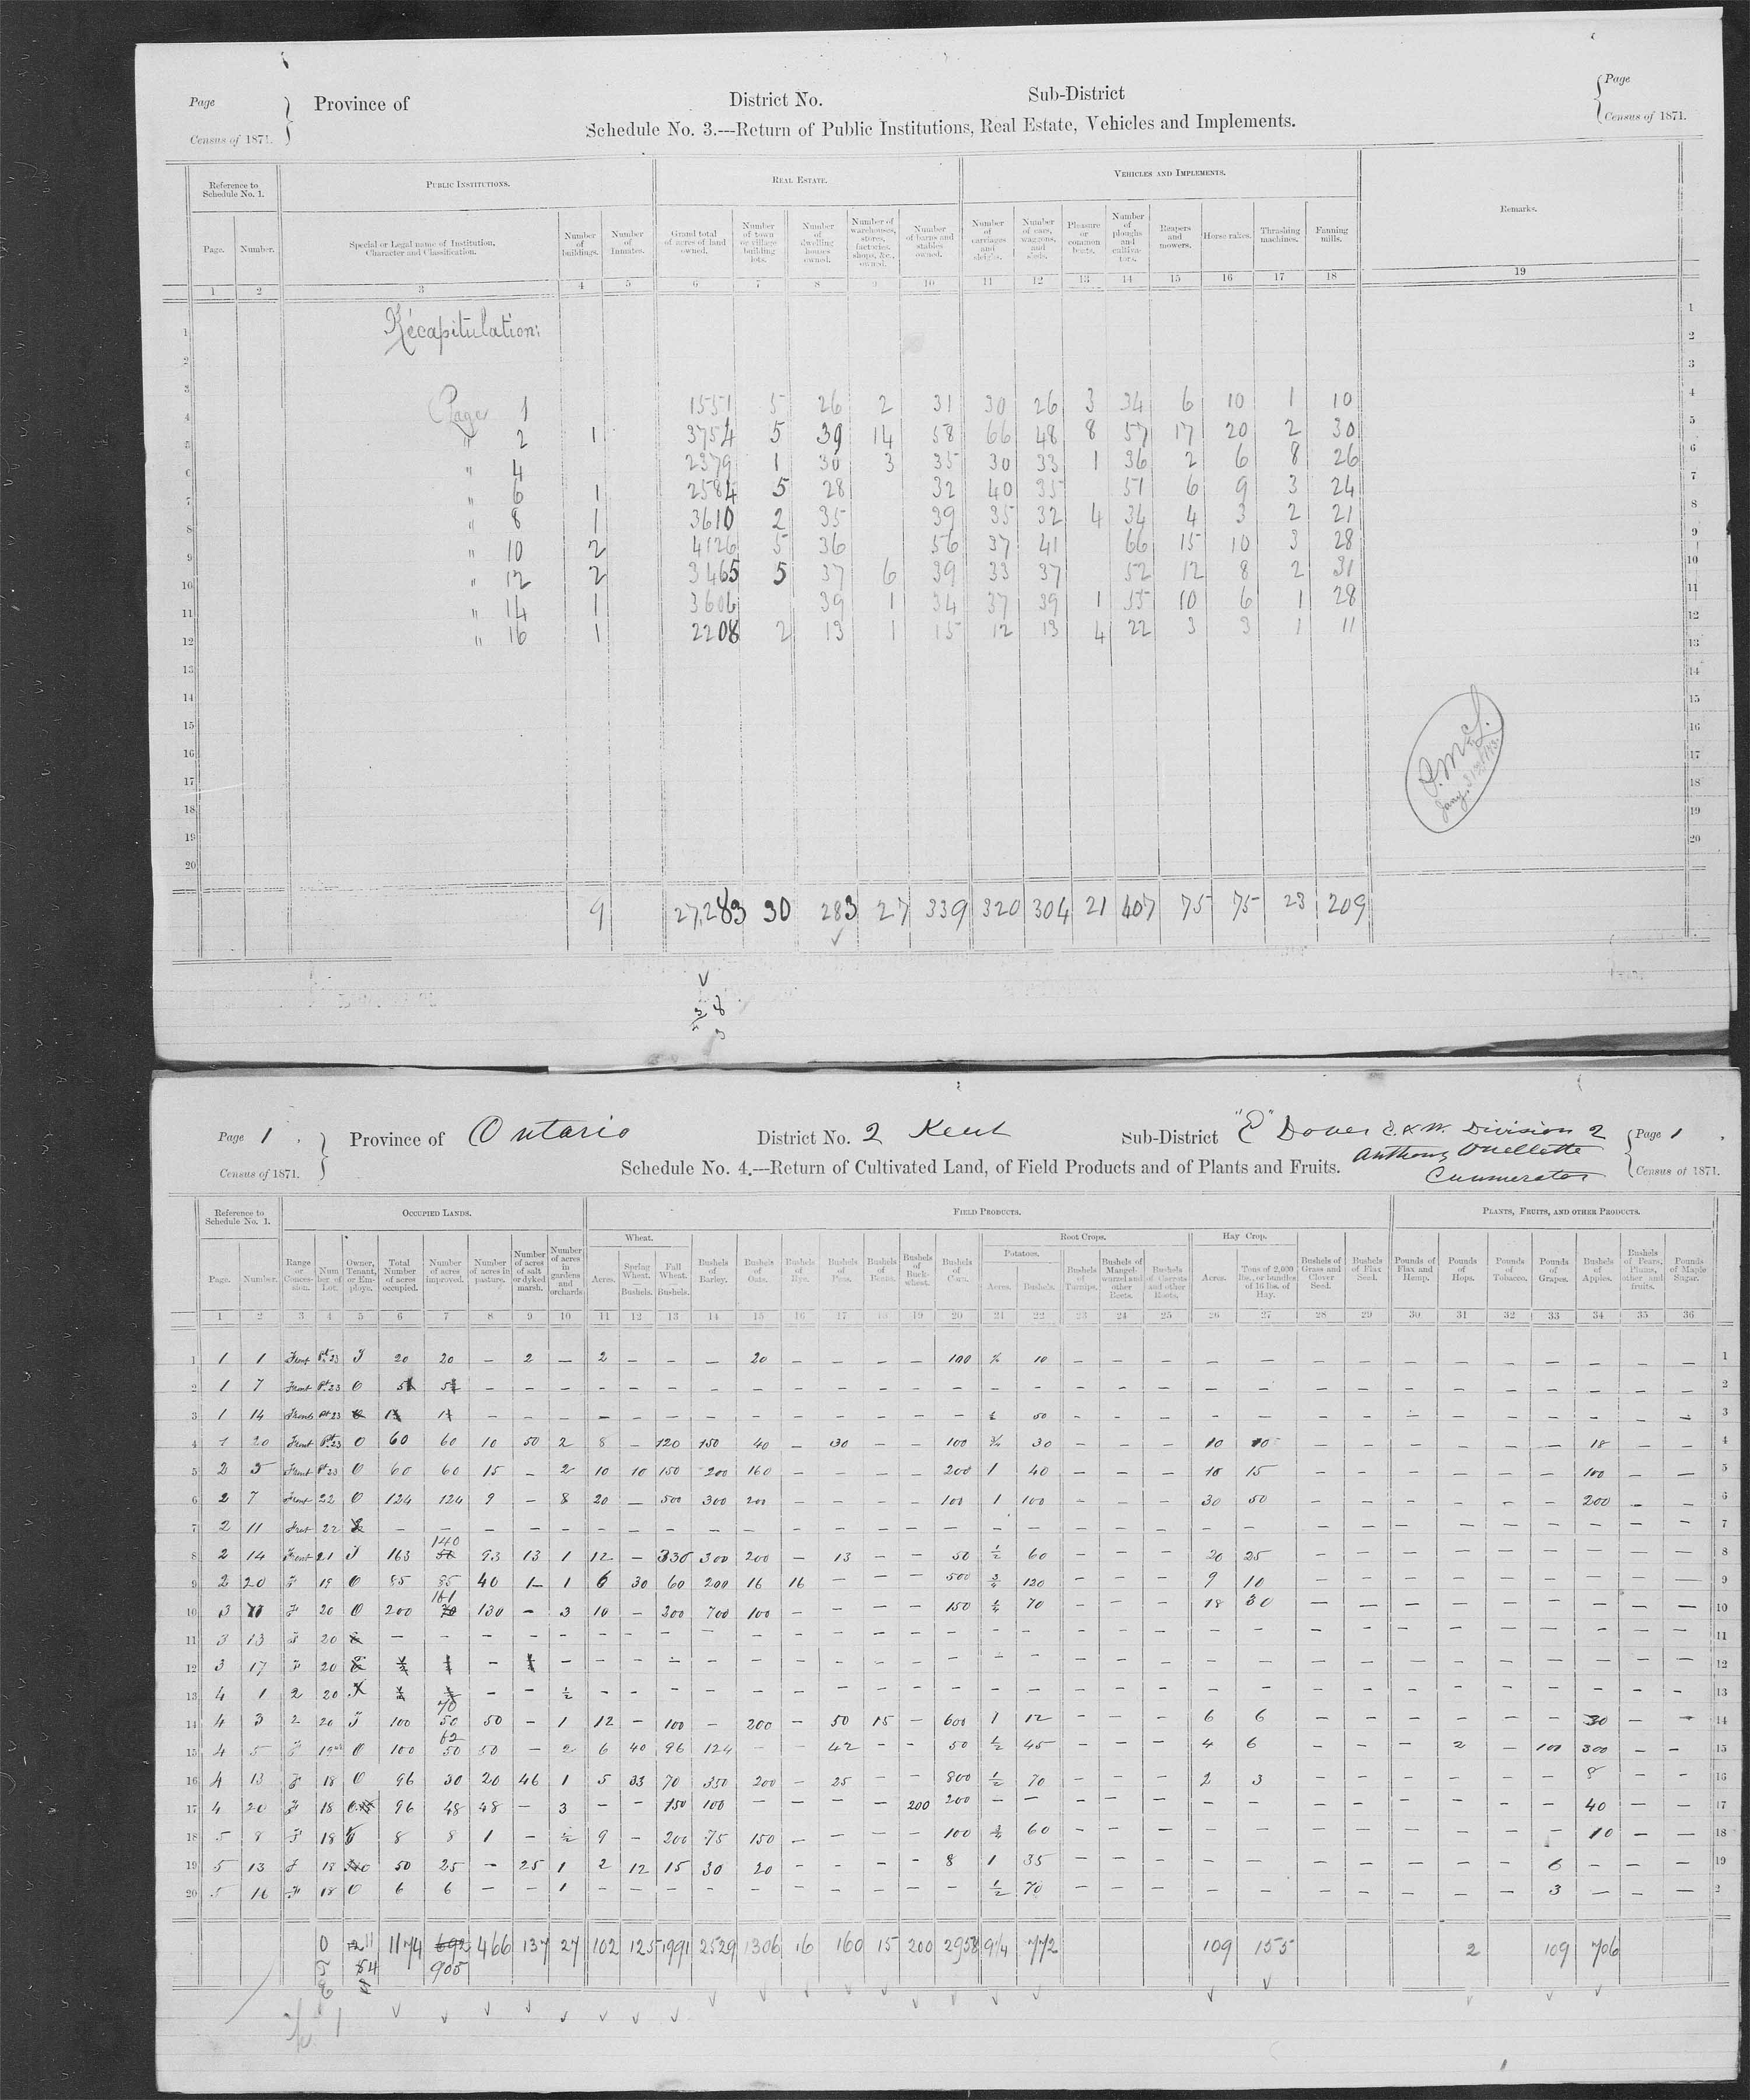 Title: Census of Canada, 1871 - Mikan Number: 142105 - Microform: c-9892